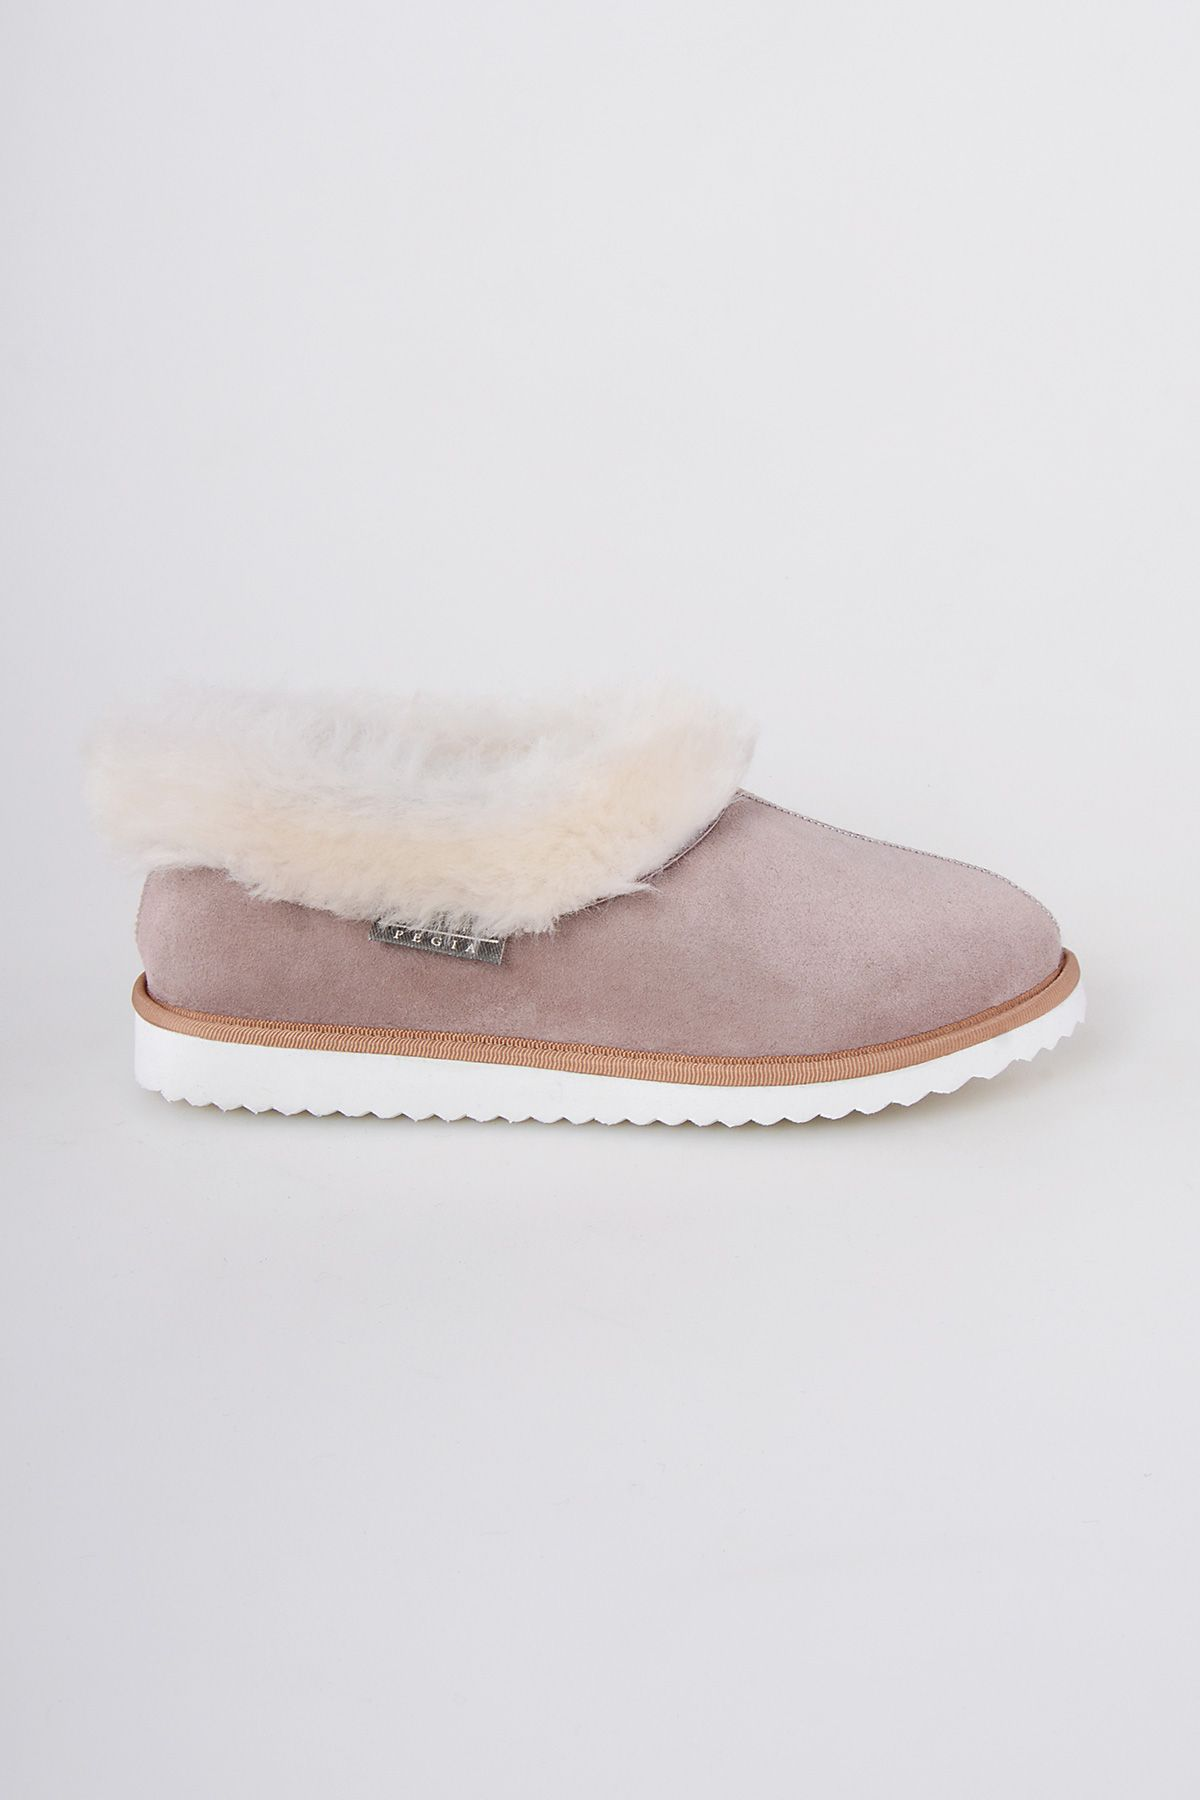 Pegia Genuine Suede & Shealing Women's House Shoes 191100 Powdery